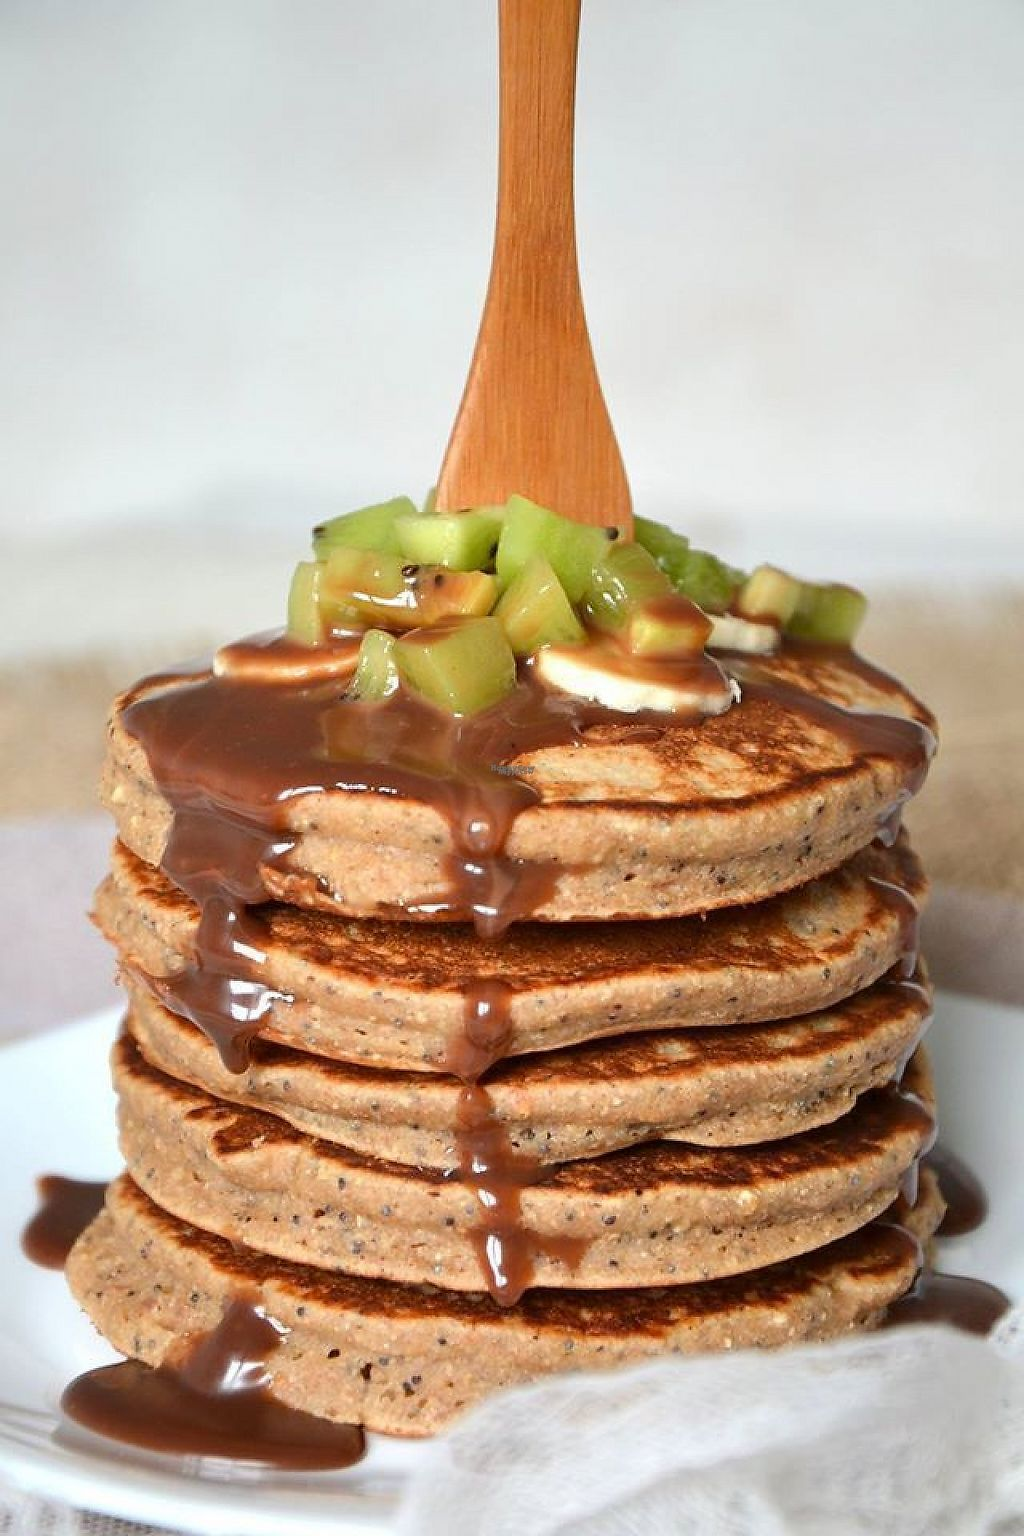 """Photo of La Vie Claire - Taoujtat  by <a href=""""/members/profile/community"""">community</a> <br/>vegan pancakes  <br/> February 4, 2017  - <a href='/contact/abuse/image/72036/221921'>Report</a>"""